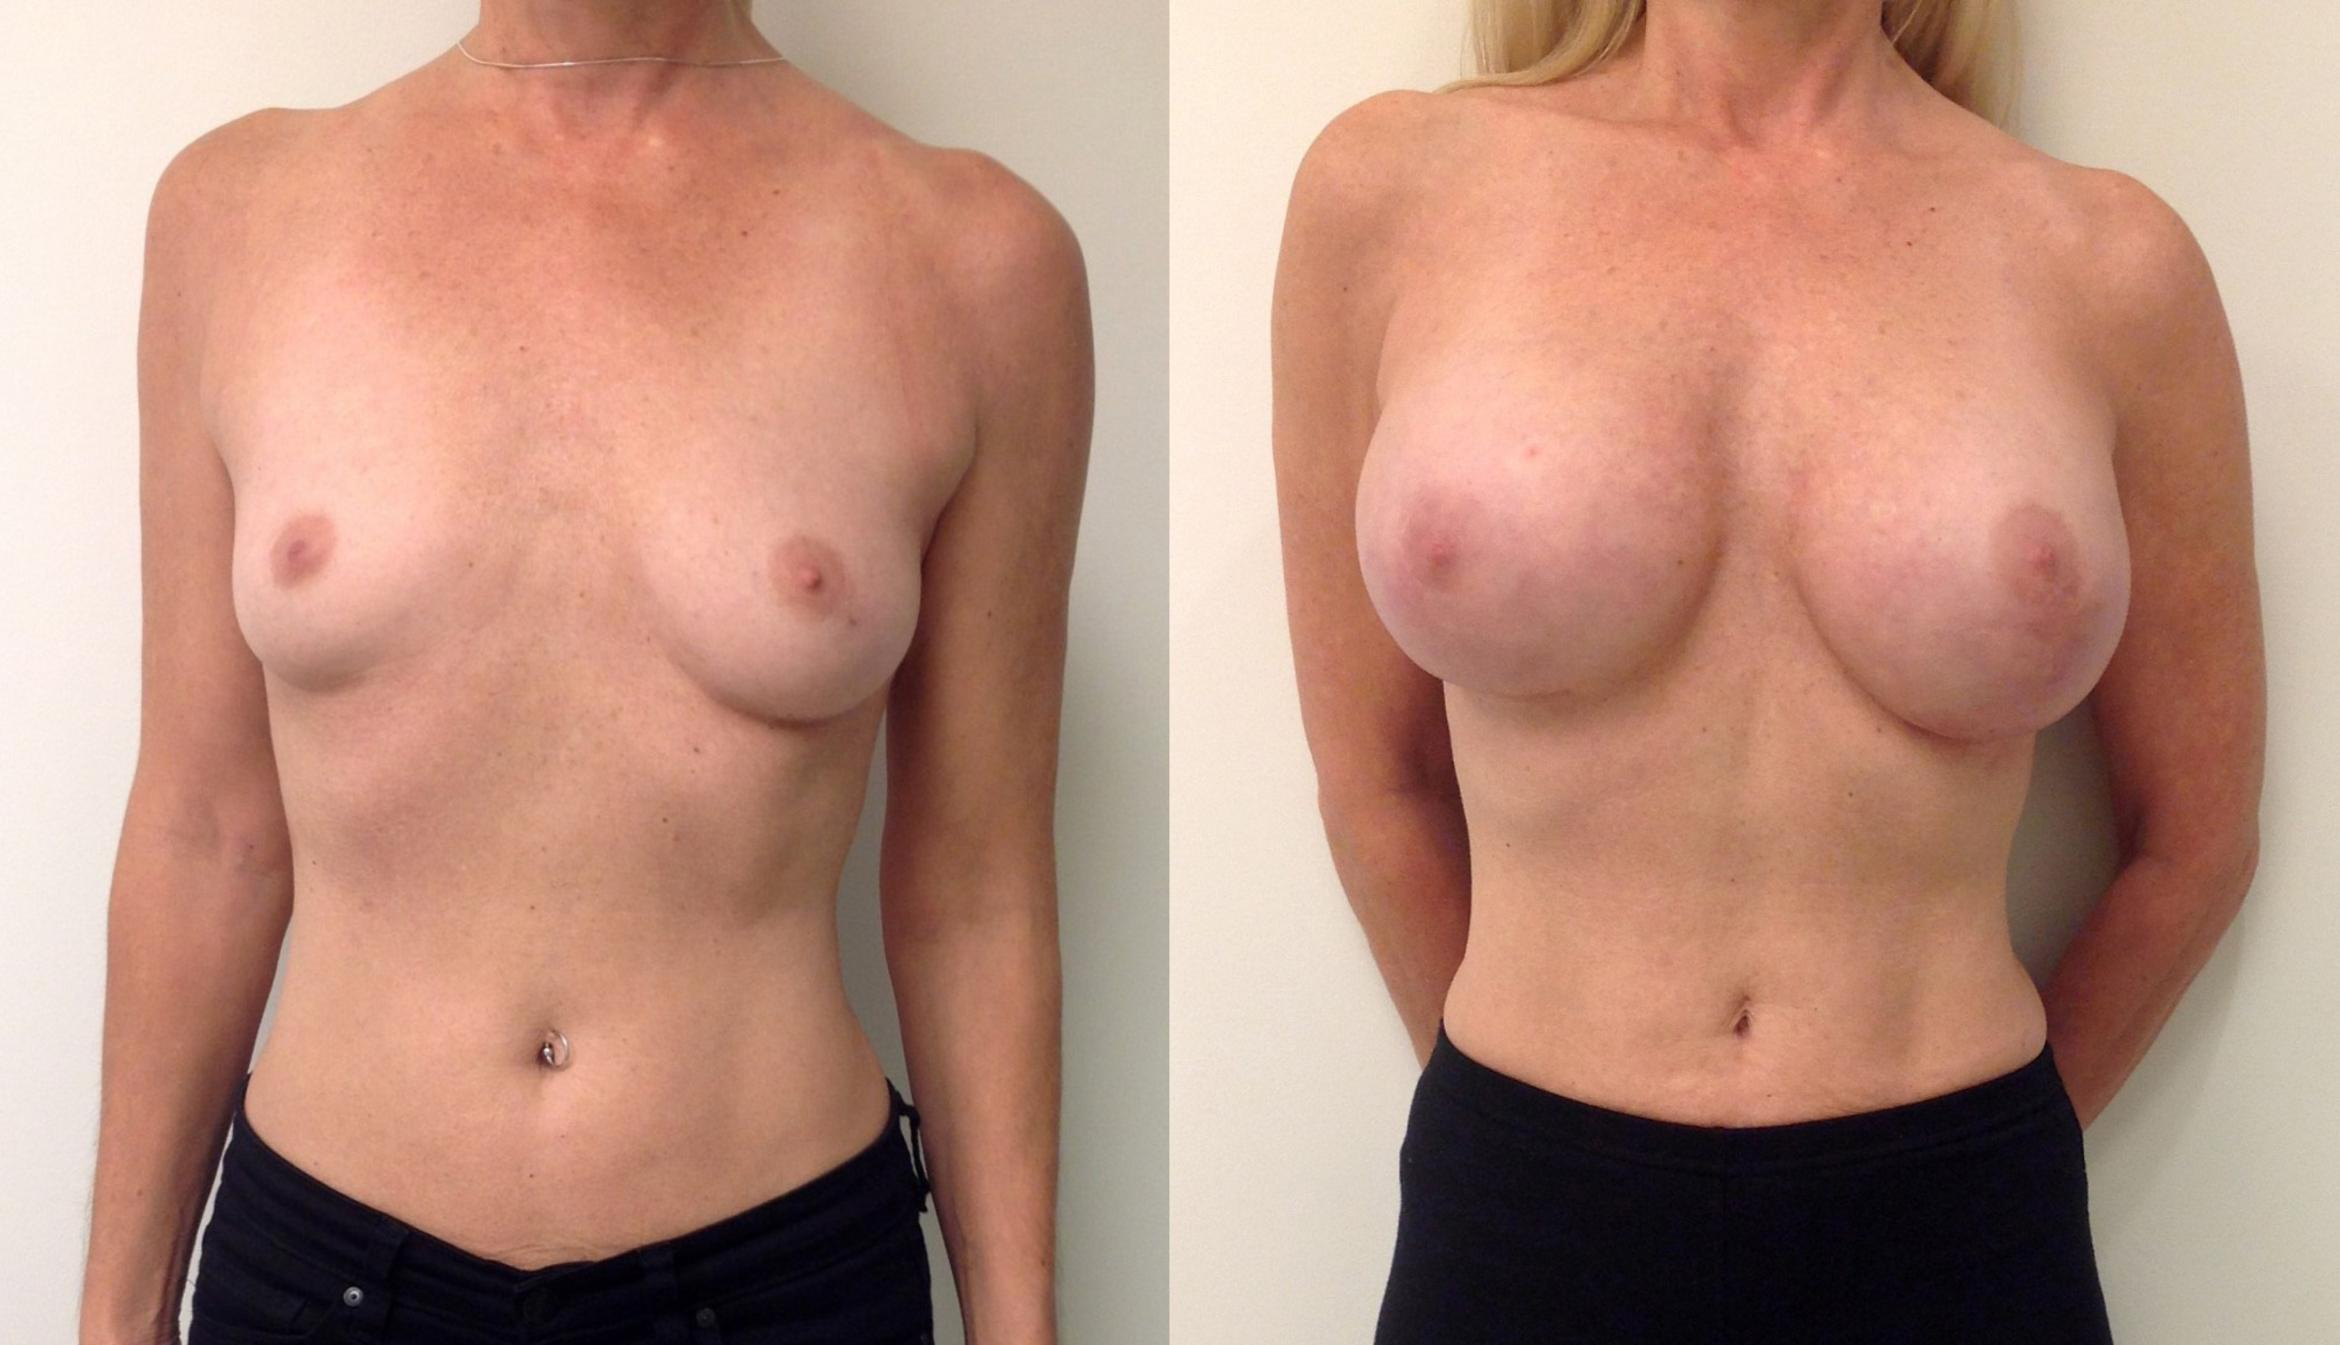 Dc Model Becomes First Double Mastectomy To Model In Sports Illustrated